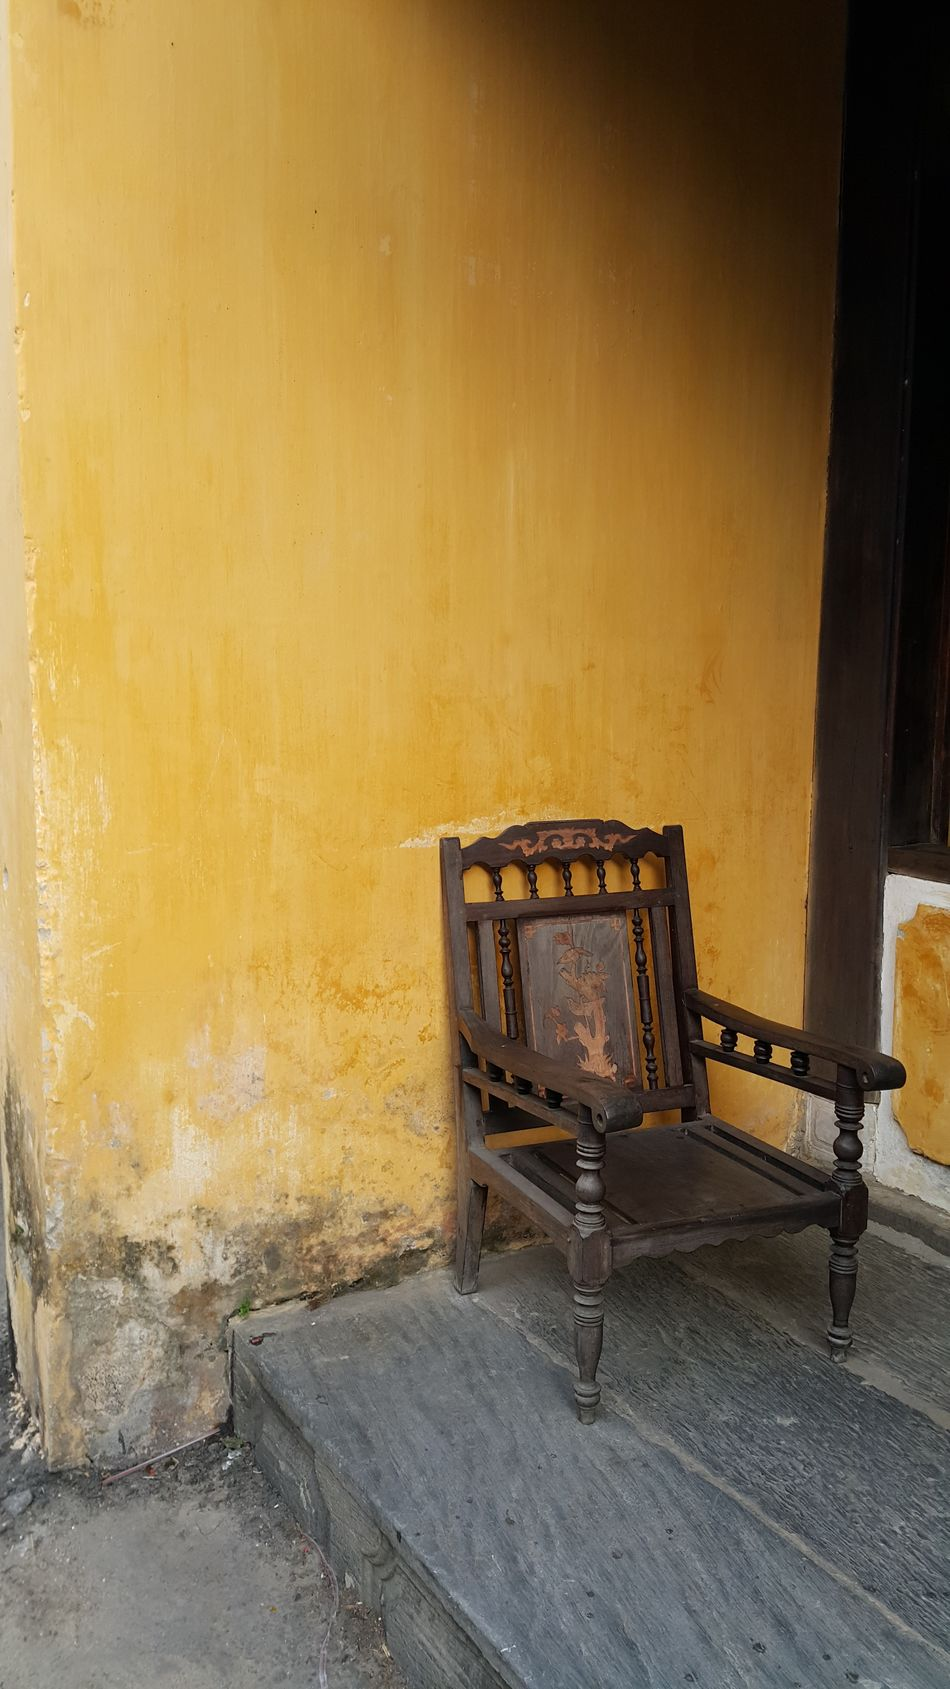 One seat isolated on a yellow wall background Solitude Solitary Moments Alone One Empty Empty Seat Seat Armchair Yellow Wall Yellow Background No People Vietnam Ancient Calm Relax Time Past